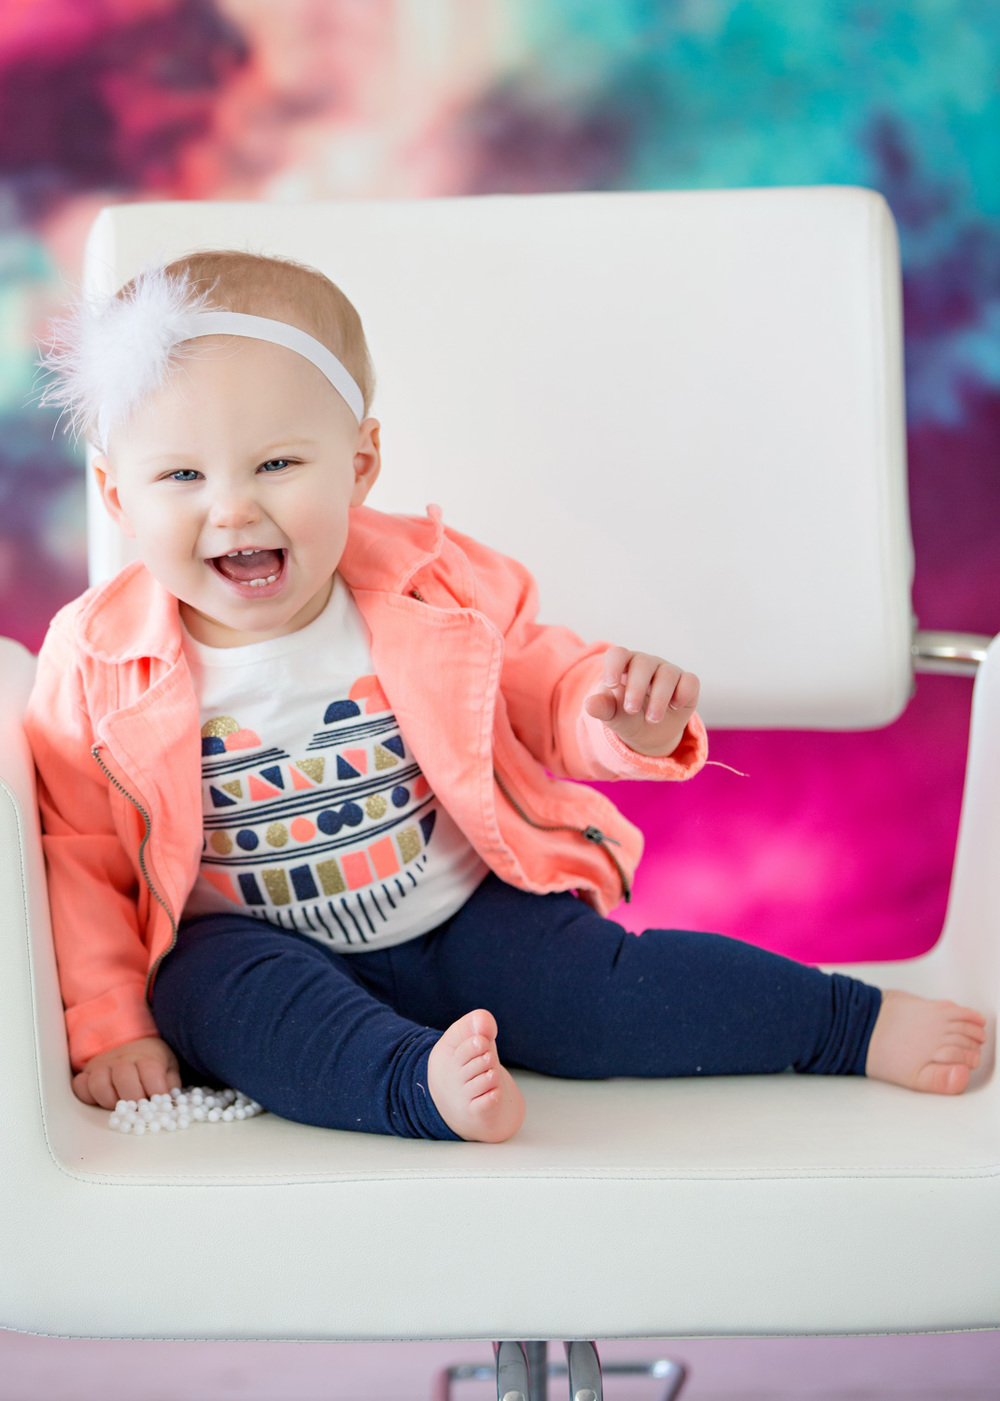 smiling baby photos hillary frost photography.jpg